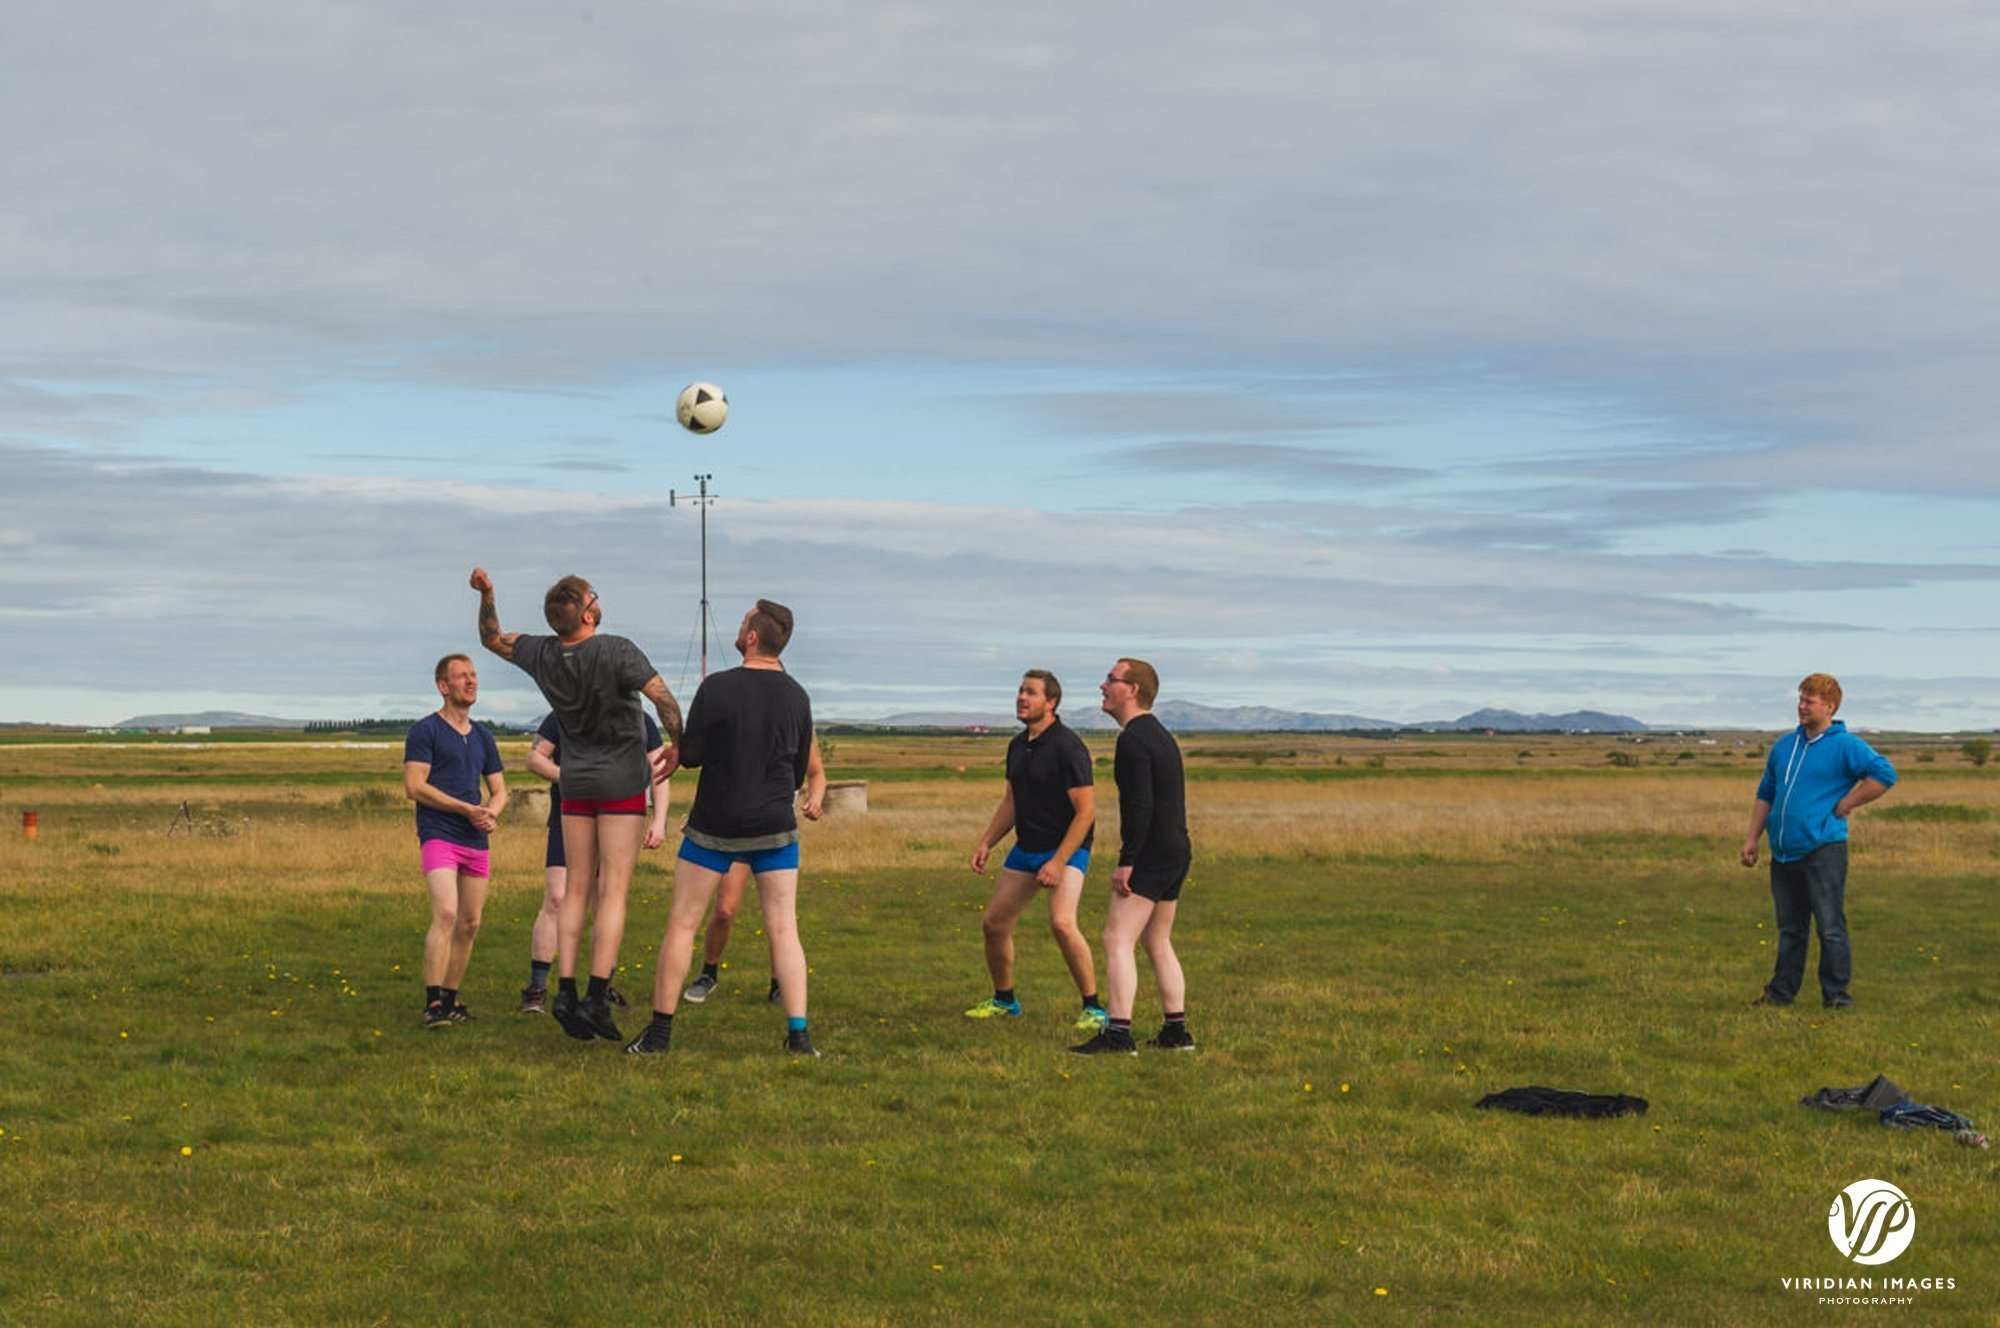 Icelandic men playing football in underwear